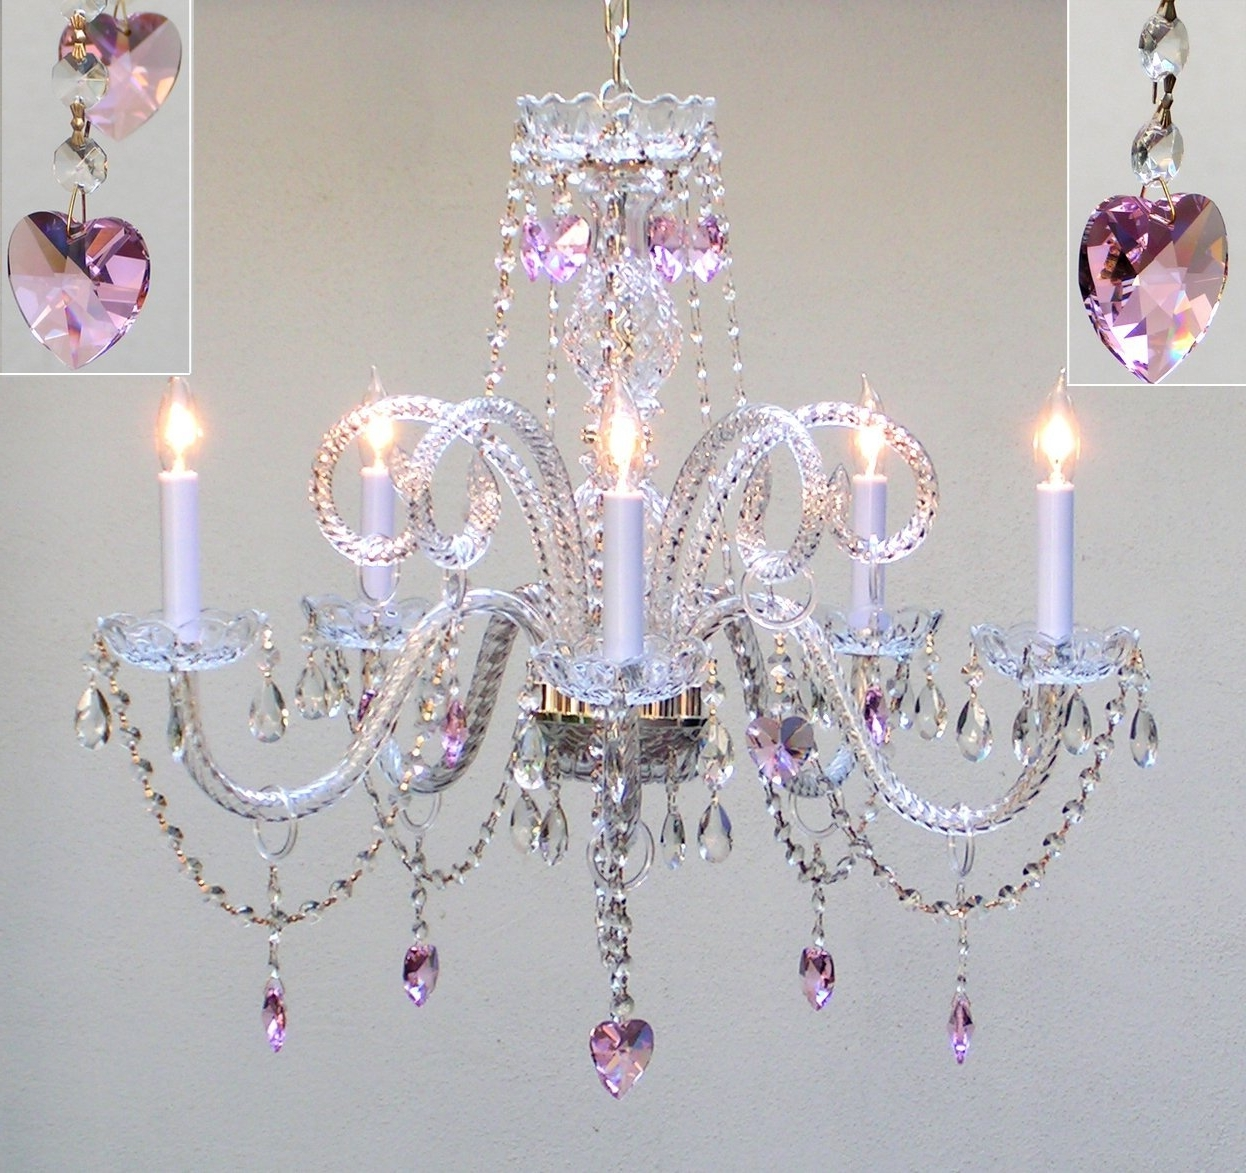 Kids Bedroom Chandeliers With Regard To Current Bedroom Modern Chandeliers Ideas For Trends And Ikea Kids Chandelier (View 7 of 15)